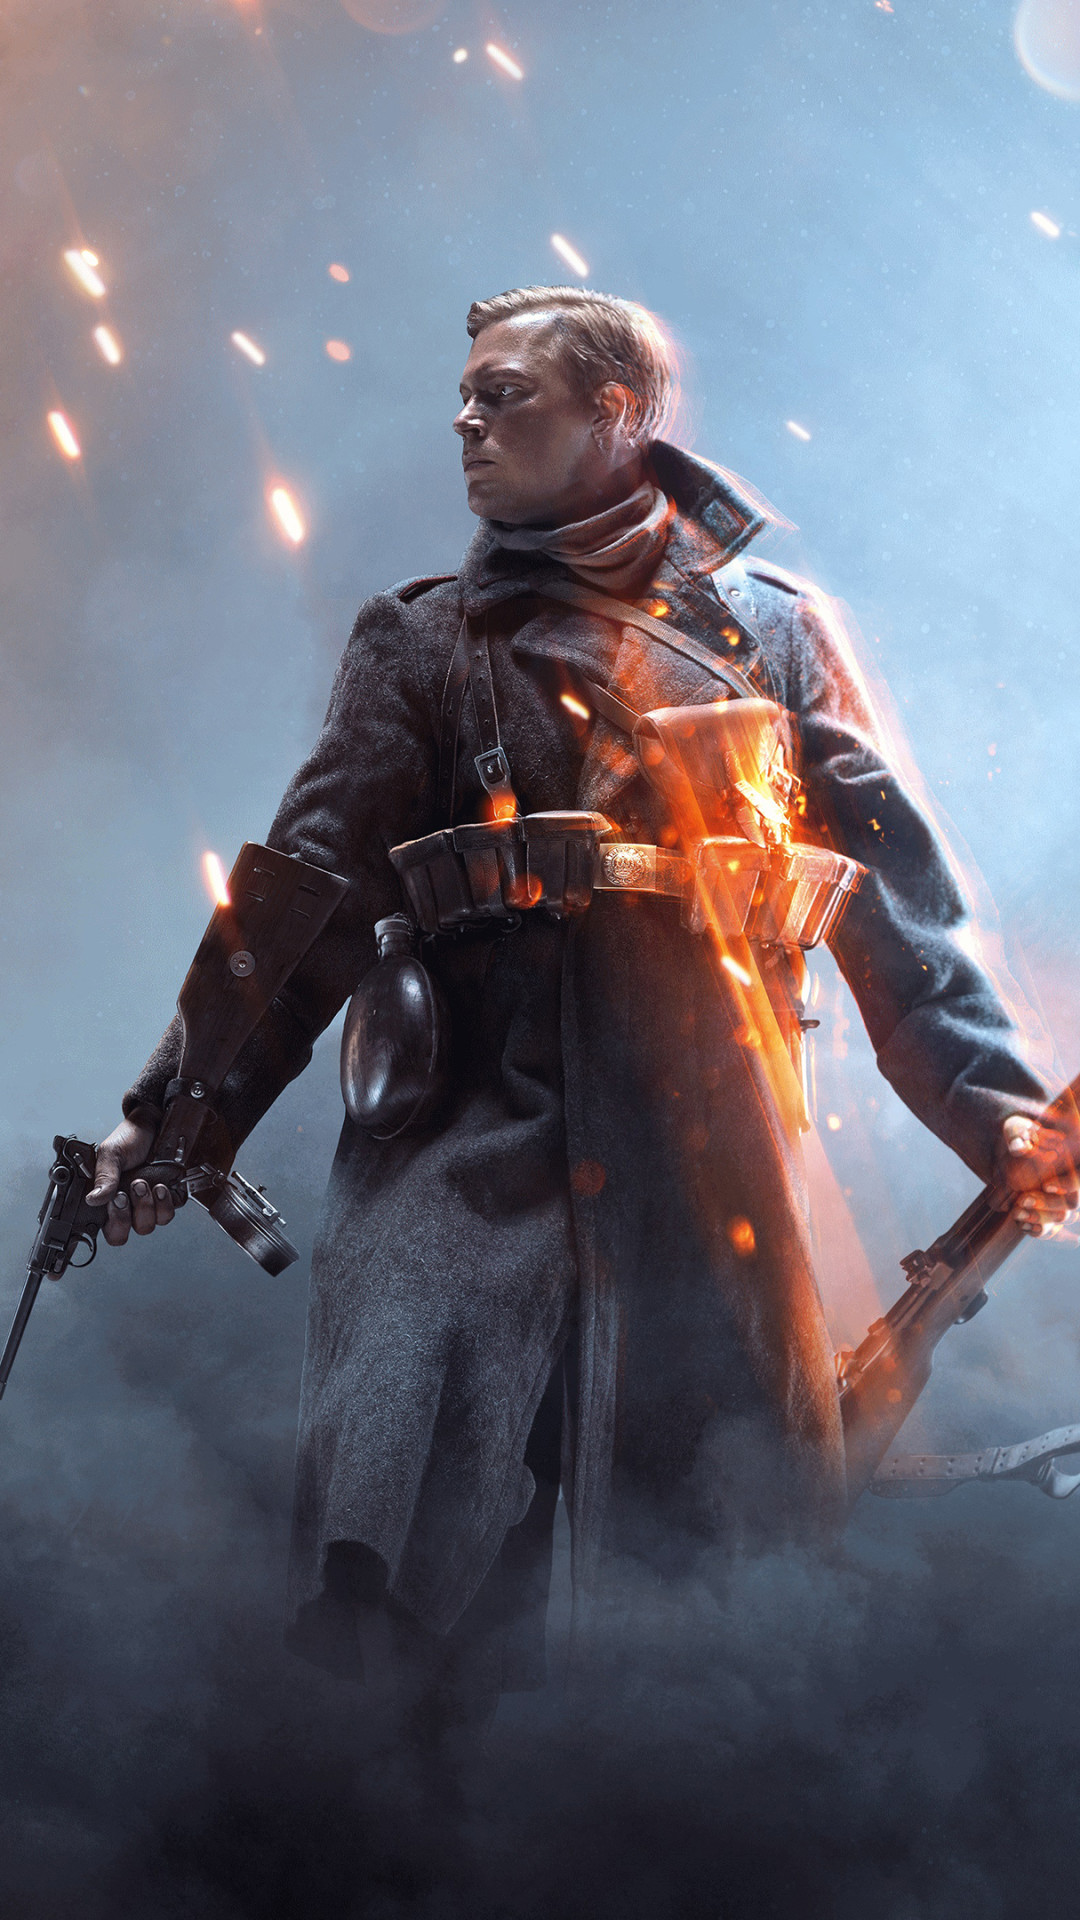 Download this Wallpaper iPhone 5S – Video Game/Battlefield 1 (1080×1920)  for all